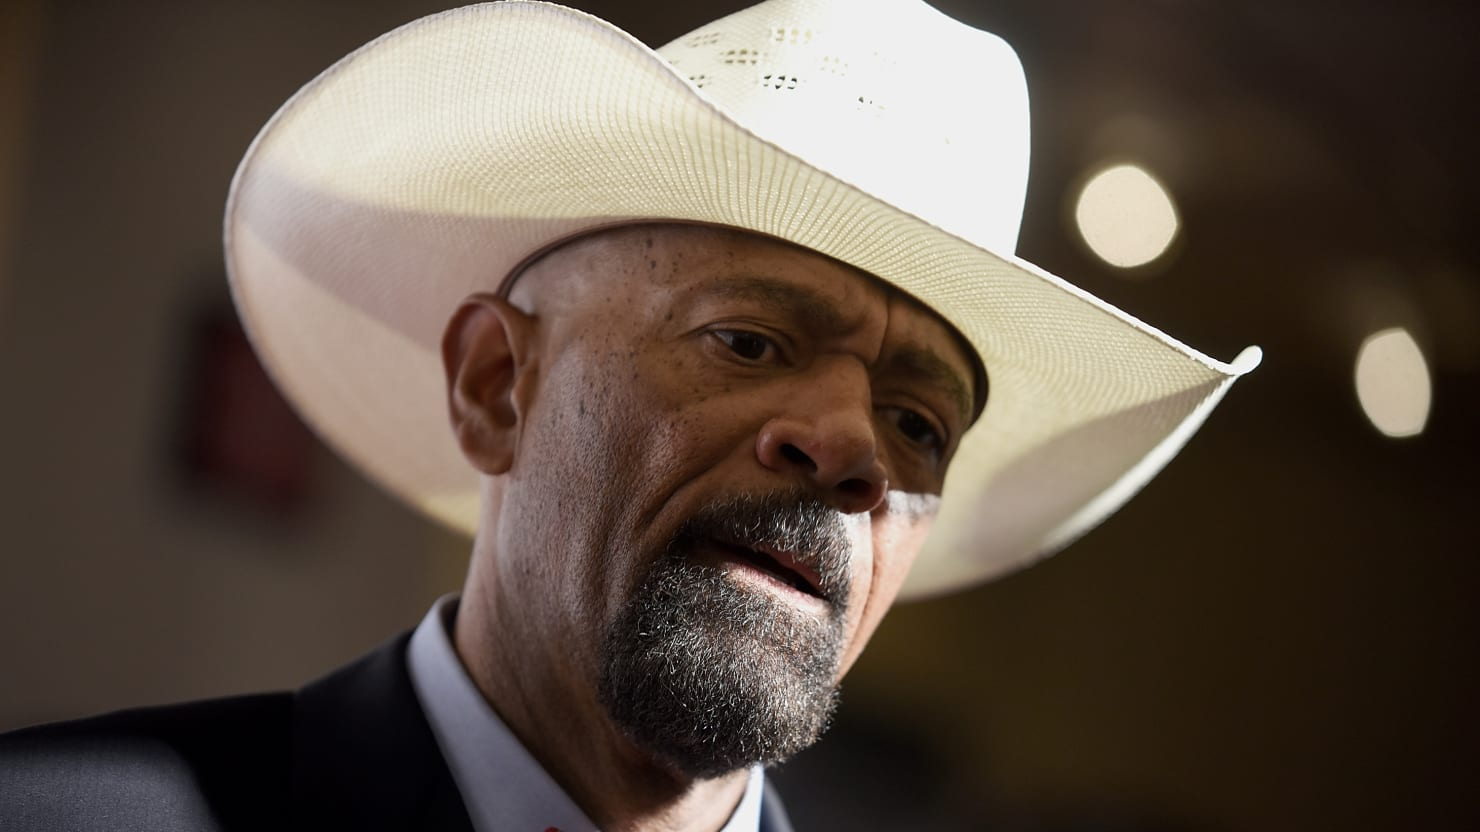 Twitter Deleted Sheriff Clarke's Wildly Reckless Coronavirus Tweets, So He Says He's Quitting